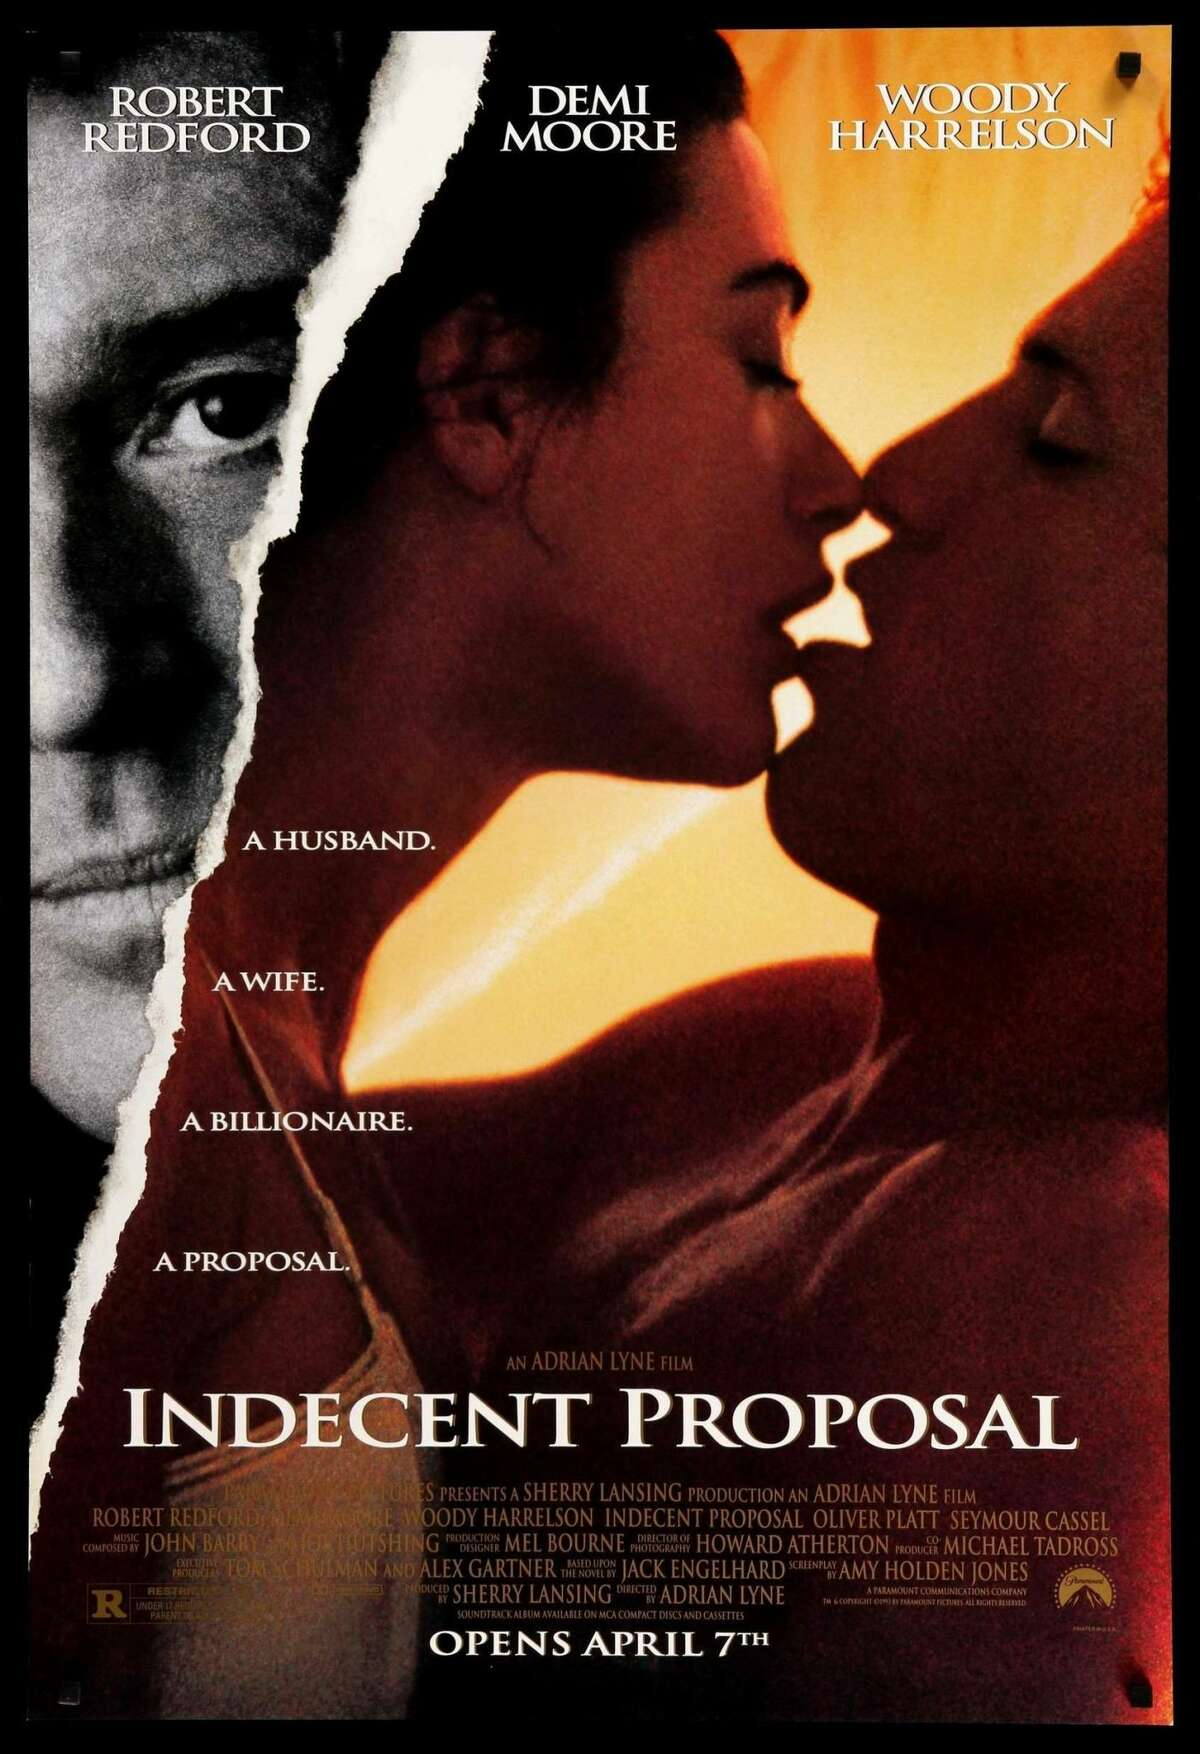 Indecent Proposal (1993) starring Robert Redford, Demi Moore, and Woody Harrelson was a box-office success, despite earning mostly negative reviews from critics.